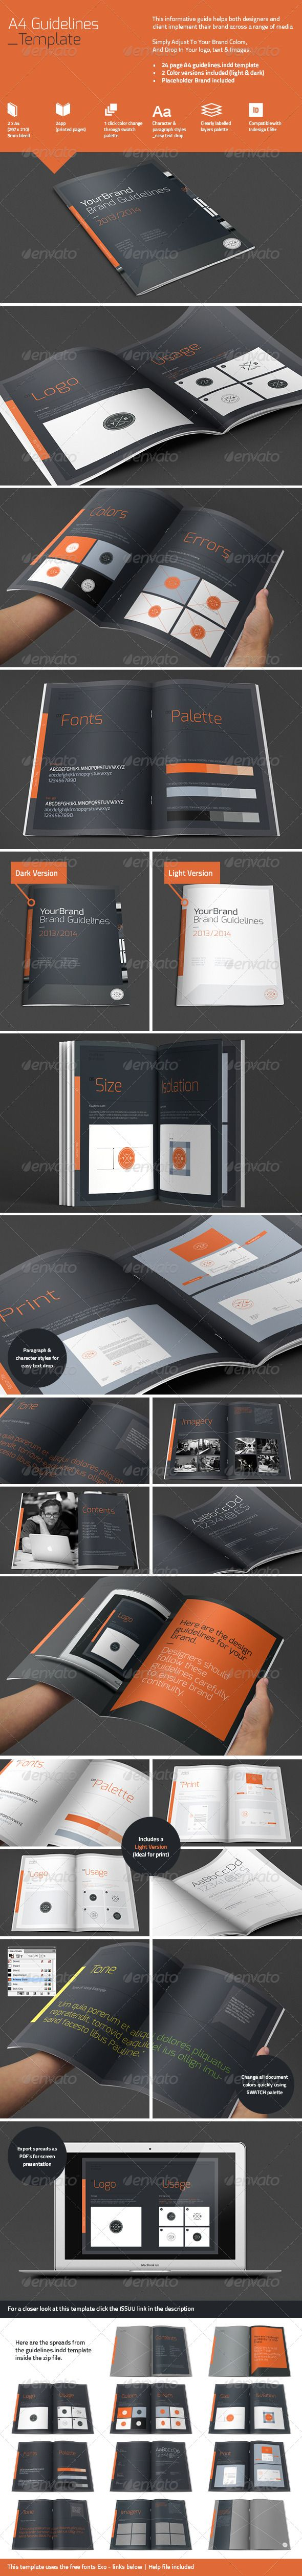 A4 Brand Guidelines — Vector EPS #print #brand guidelines • Available here → https://graphicriver.net/item/a4-brand-guidelines/4825619?ref=pxcr